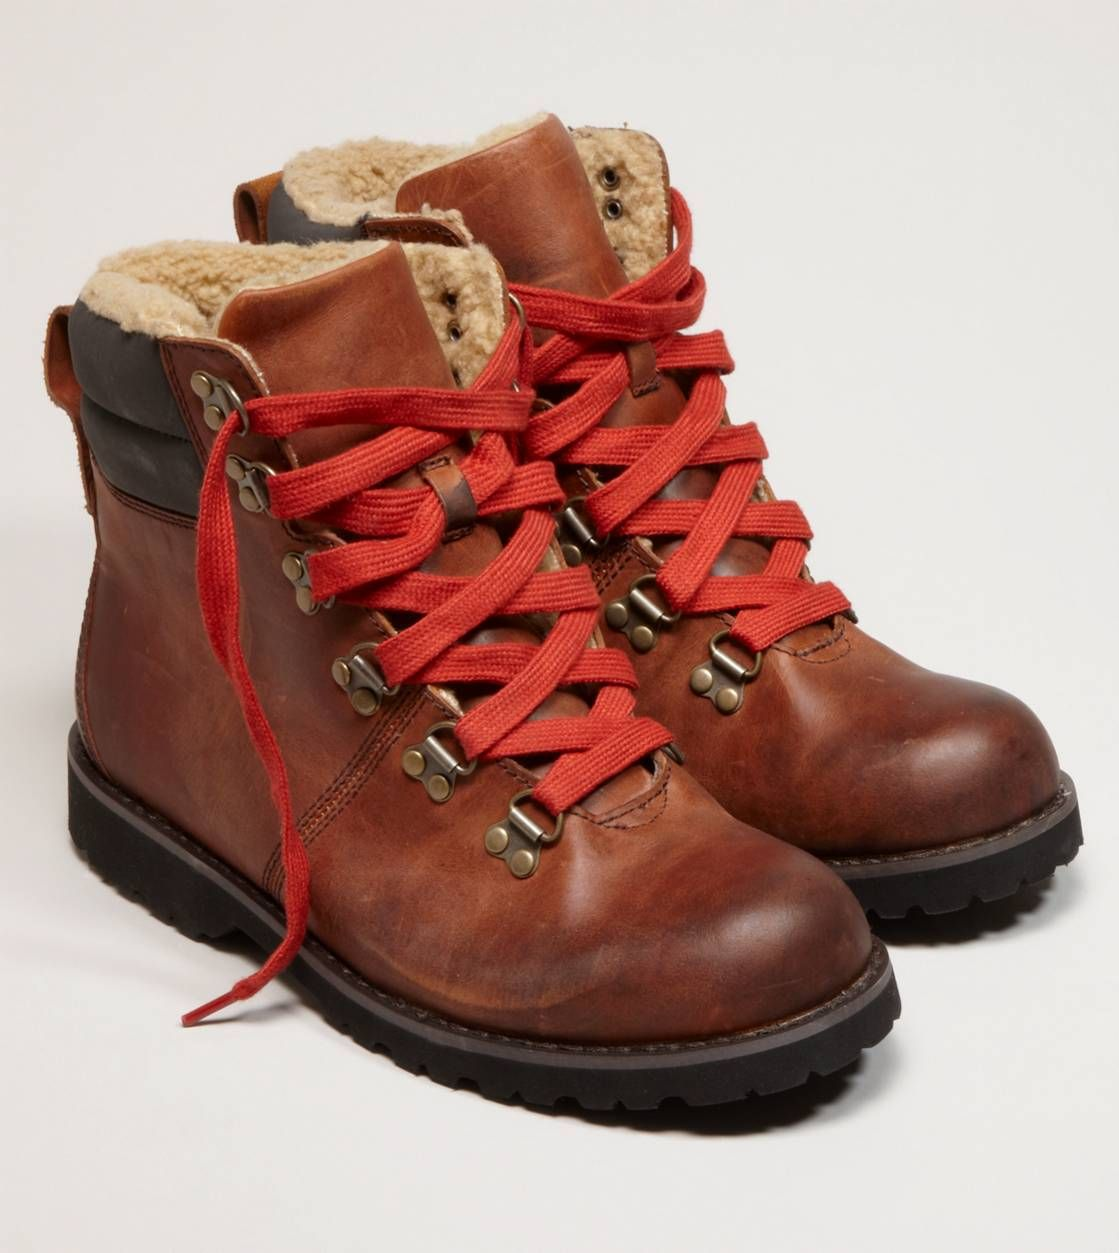 danner shoes strings styles photoshop cs6